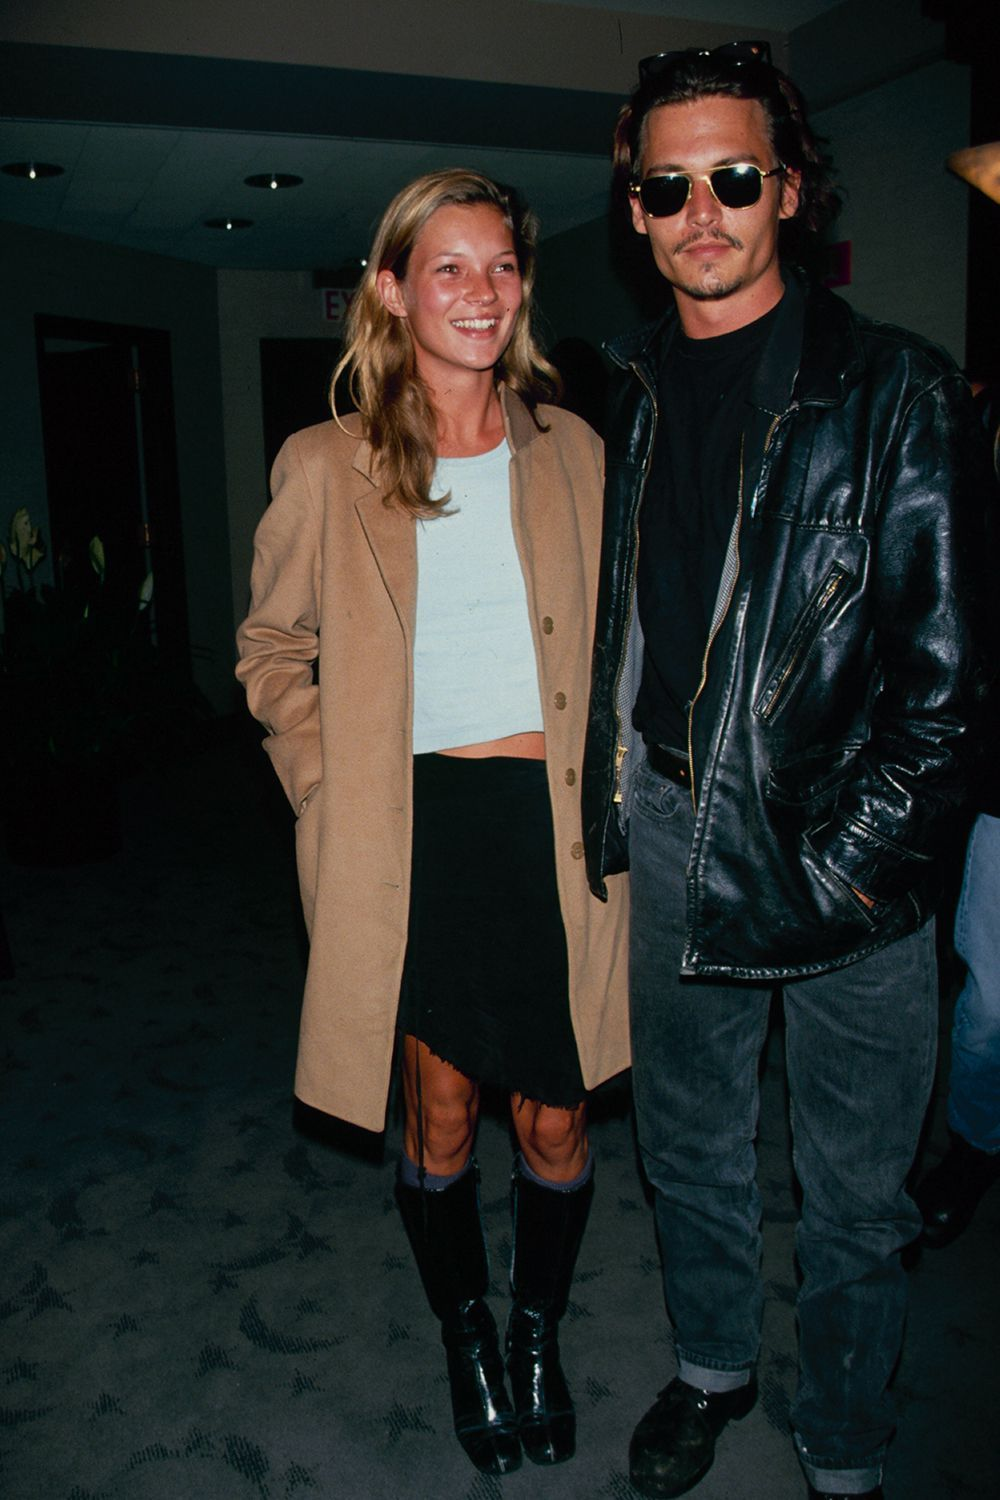 The Most Iconic Fashion Moments of the 90s